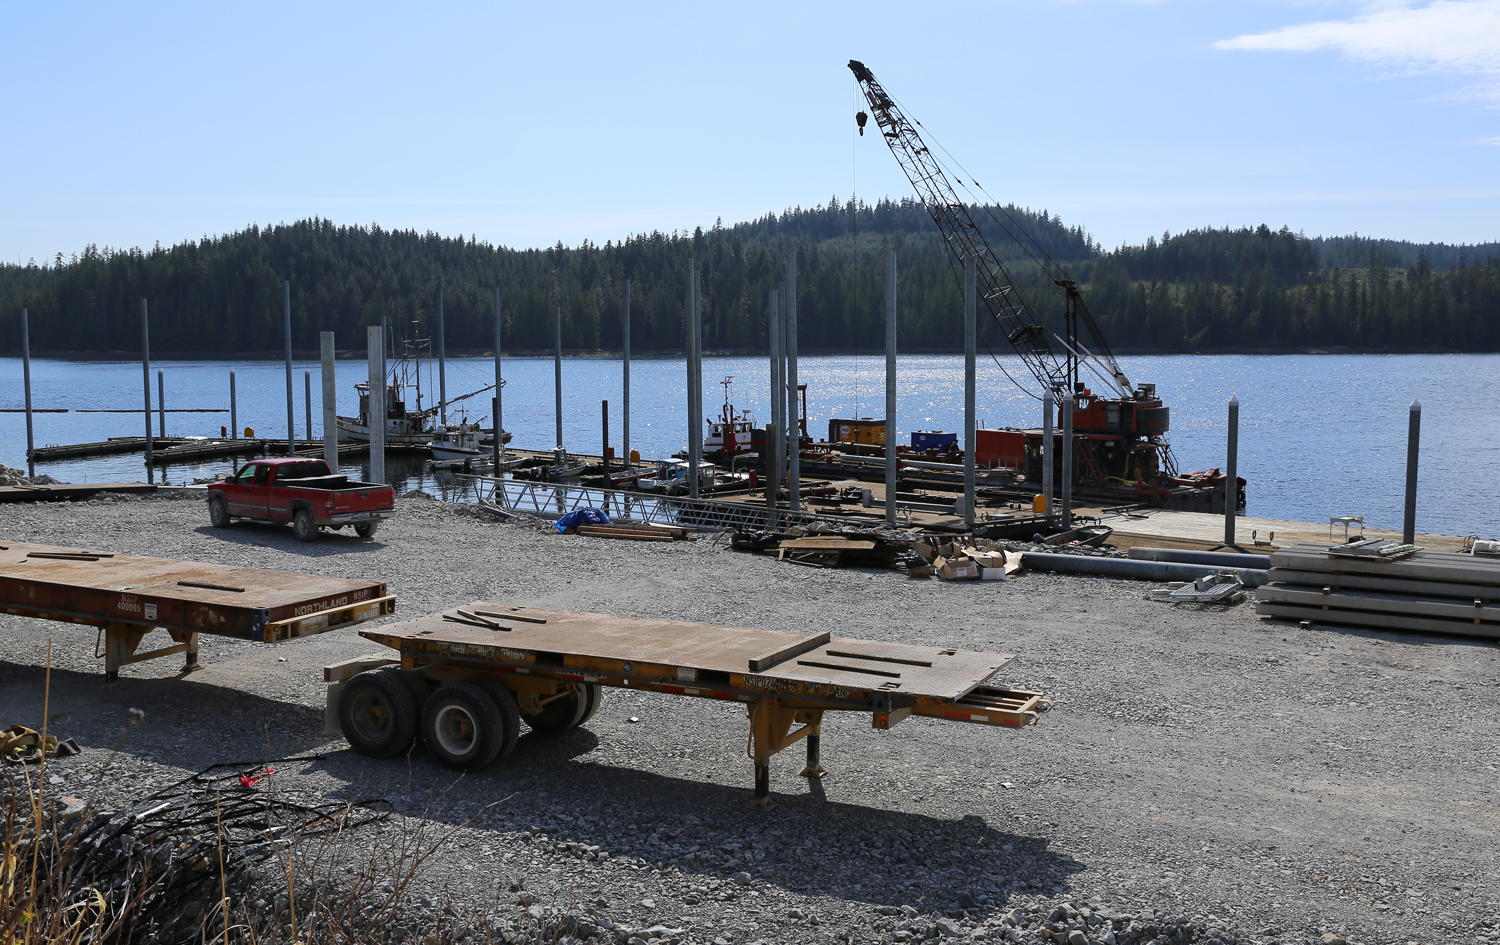 Along with the dock there is an upgraded parking lot.